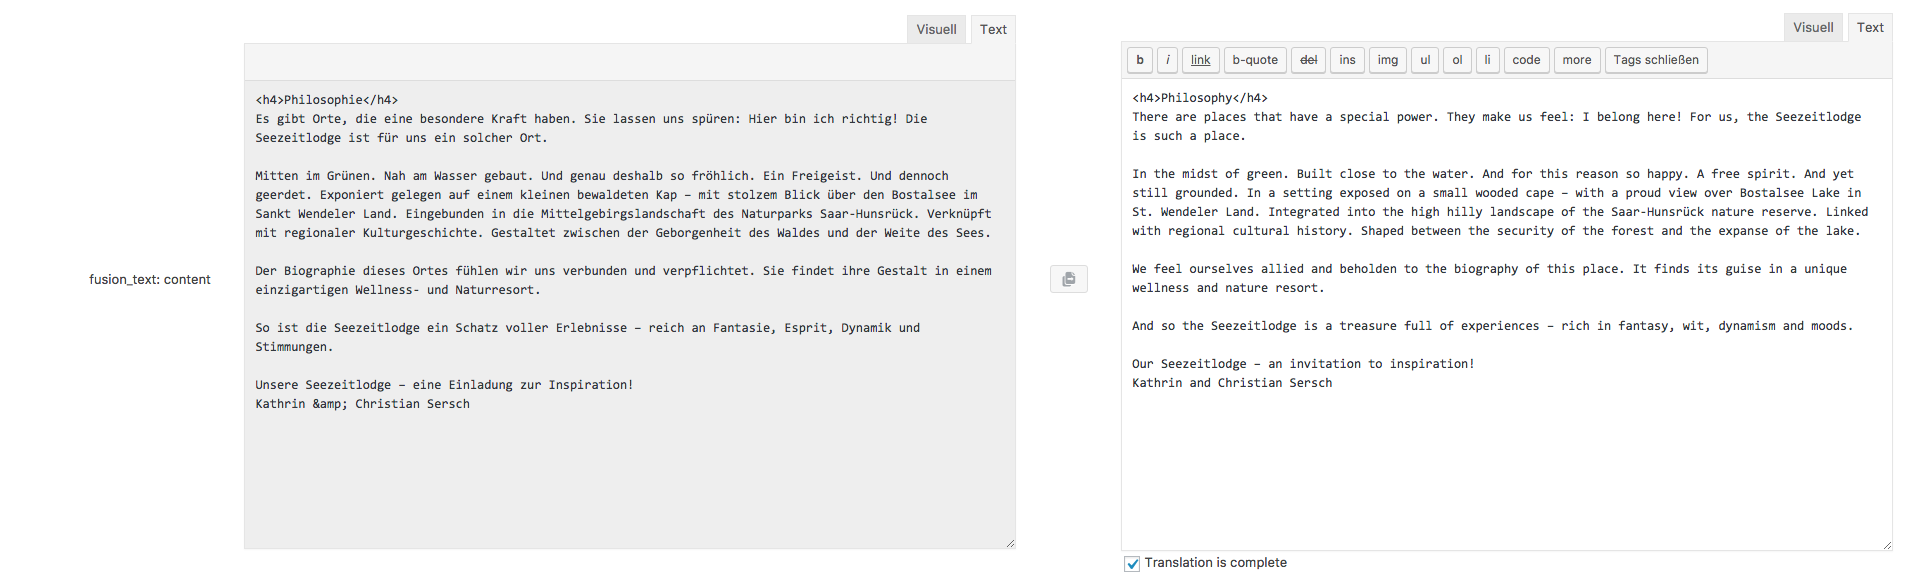 XLIFF Import - Blank translated pages - WPML